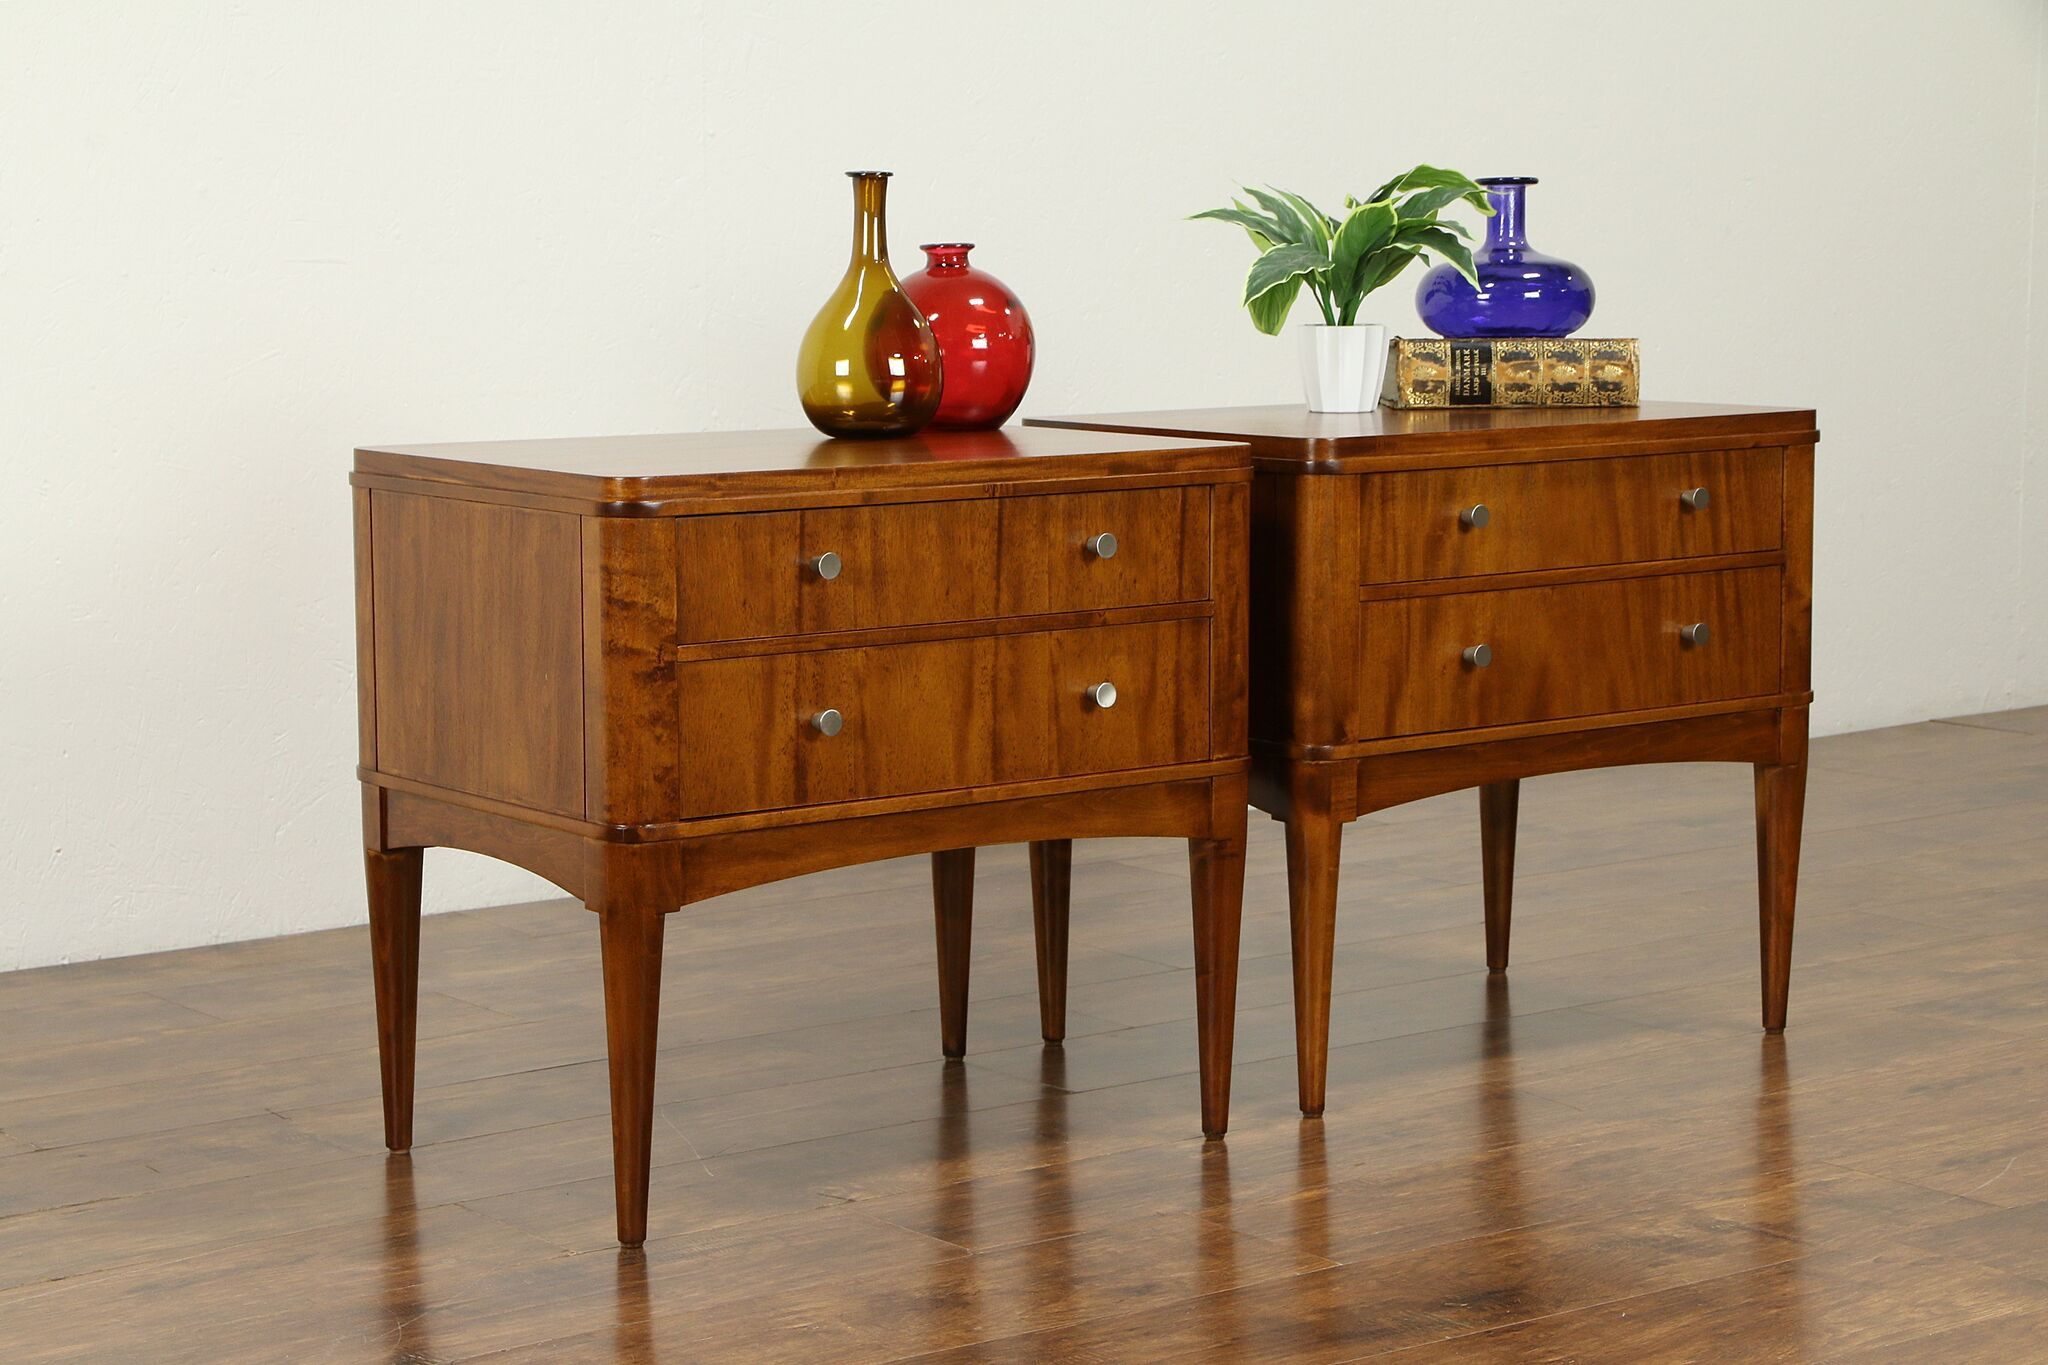 Stupendous Pair Midcentury Modern 1960 Vintage End Tables Nightstands Ethan Allen 31692 Gmtry Best Dining Table And Chair Ideas Images Gmtryco